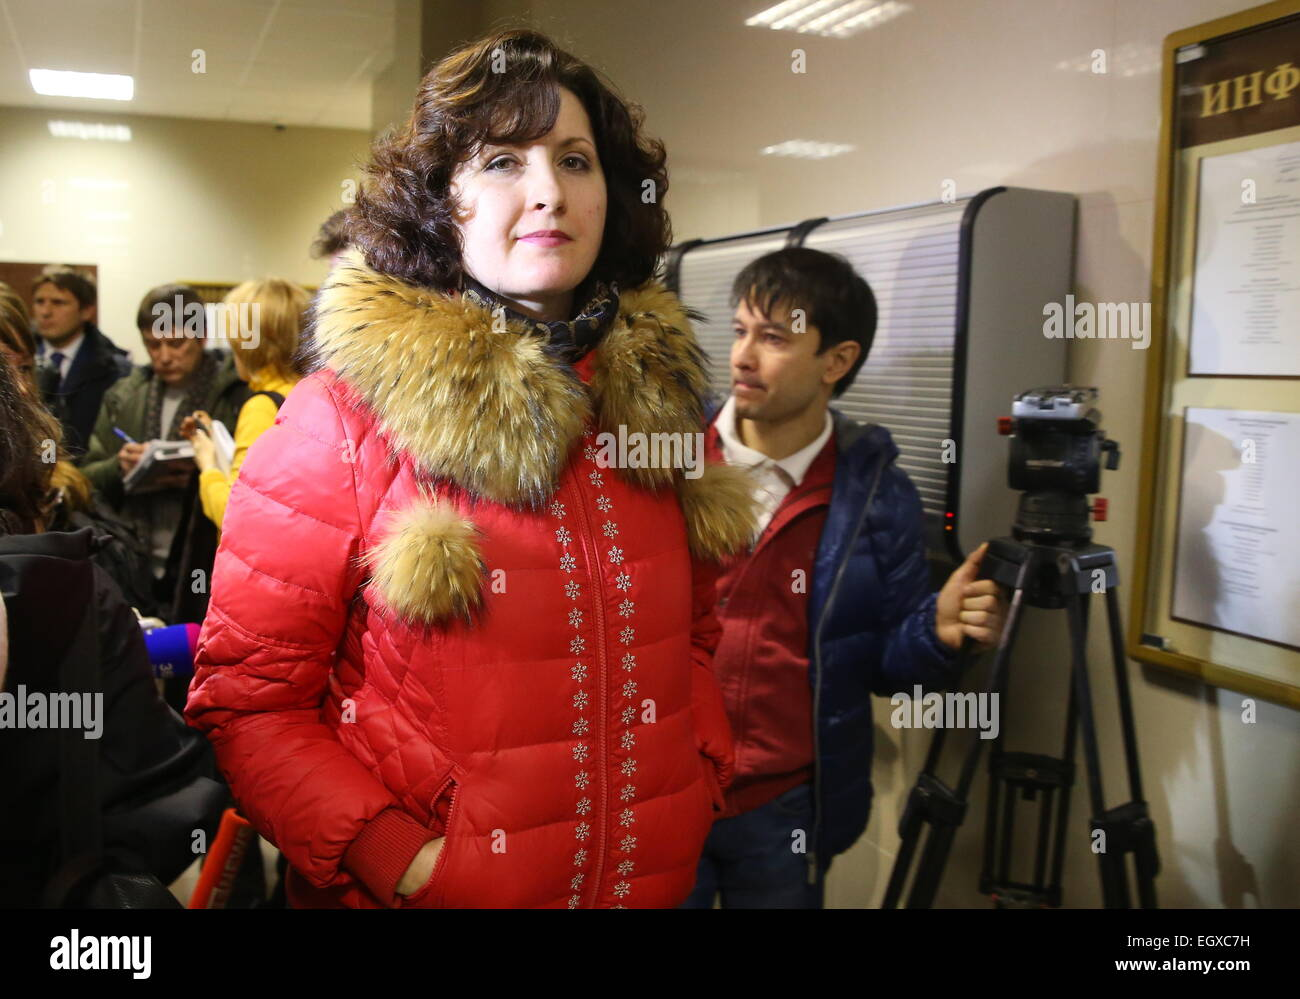 Moscow, Russia. 03rd Mar, 2015. Yelena Bushuyeva, the wife of a murdered police officer, talking to the media after - Stock Image